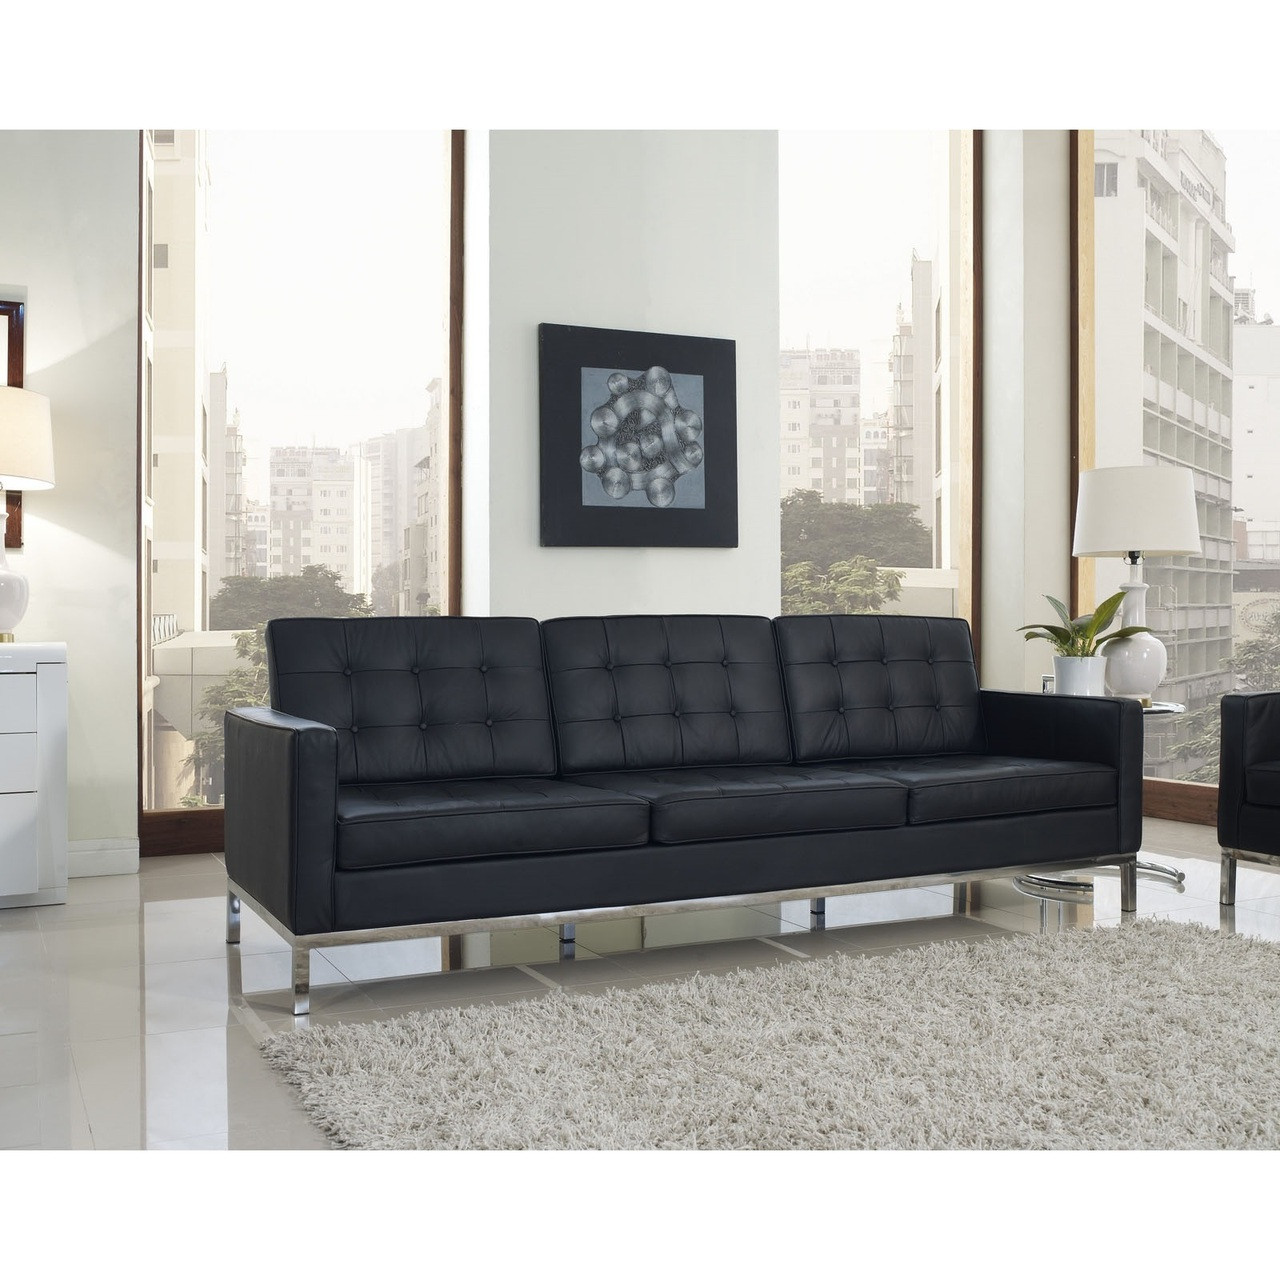 Ordinaire Florence Style Leather Loft Sofa